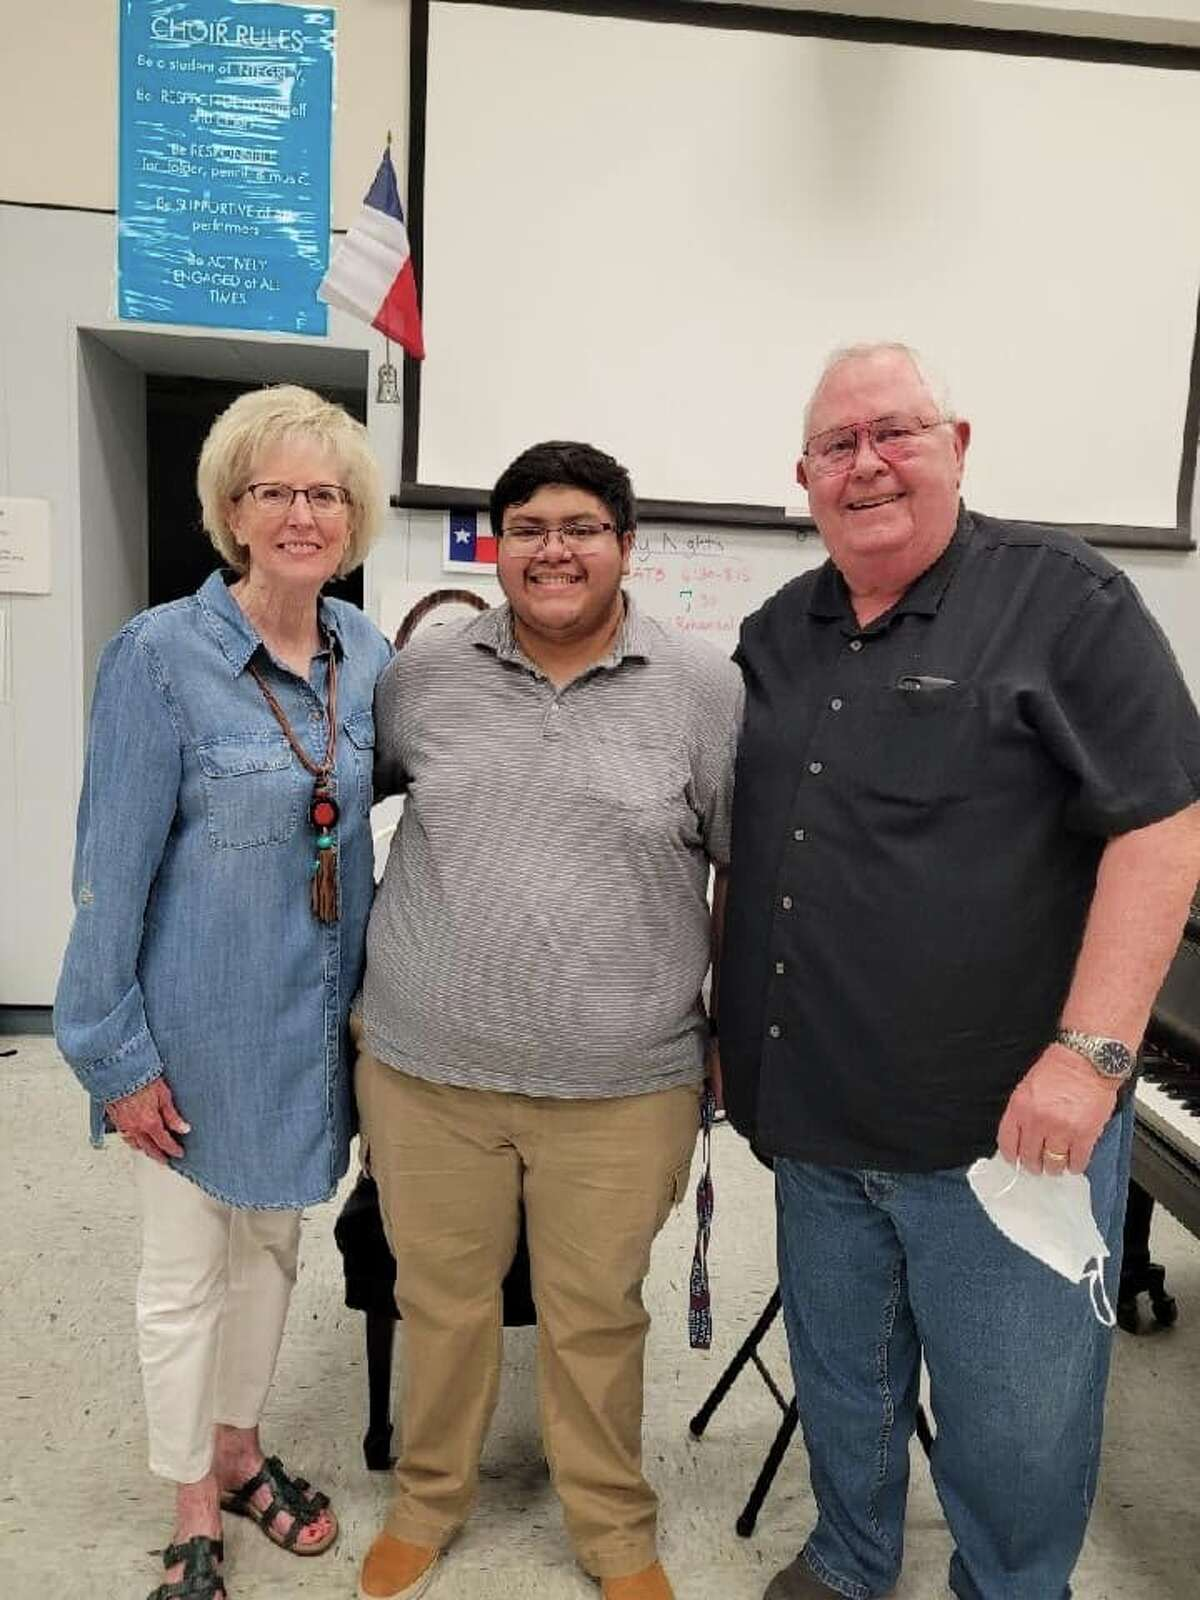 Caleb Aguirre, a recent Plainview High School graduate, is this year's recipient of the Clay R. Warren Memorial Scholarship, which is awarded annually through the Community Foundation of West Texas. Pictured: Caleb Aguirre (center) stands with Freada and Mark Warren, parents of the late Clay Warren